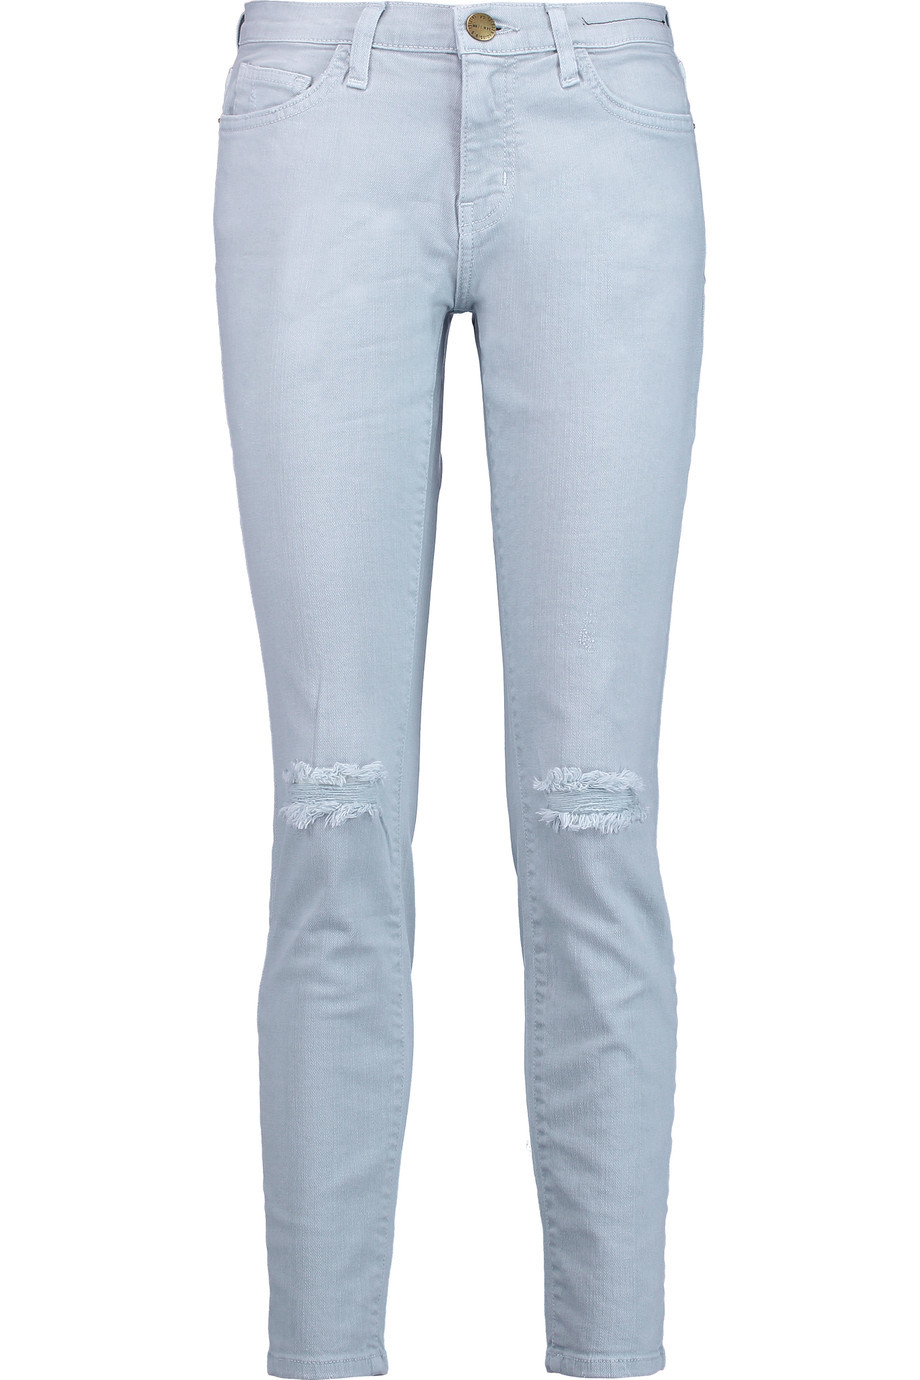 The Stiletto Distressed Mid Rise Skinny Jeans Sky Blue - style: skinny leg; length: standard; pattern: plain; pocket detail: traditional 5 pocket; waist: mid/regular rise; predominant colour: pale blue; occasions: casual; fibres: cotton - stretch; texture group: denim; pattern type: fabric; jeans detail: rips; season: s/s 2016